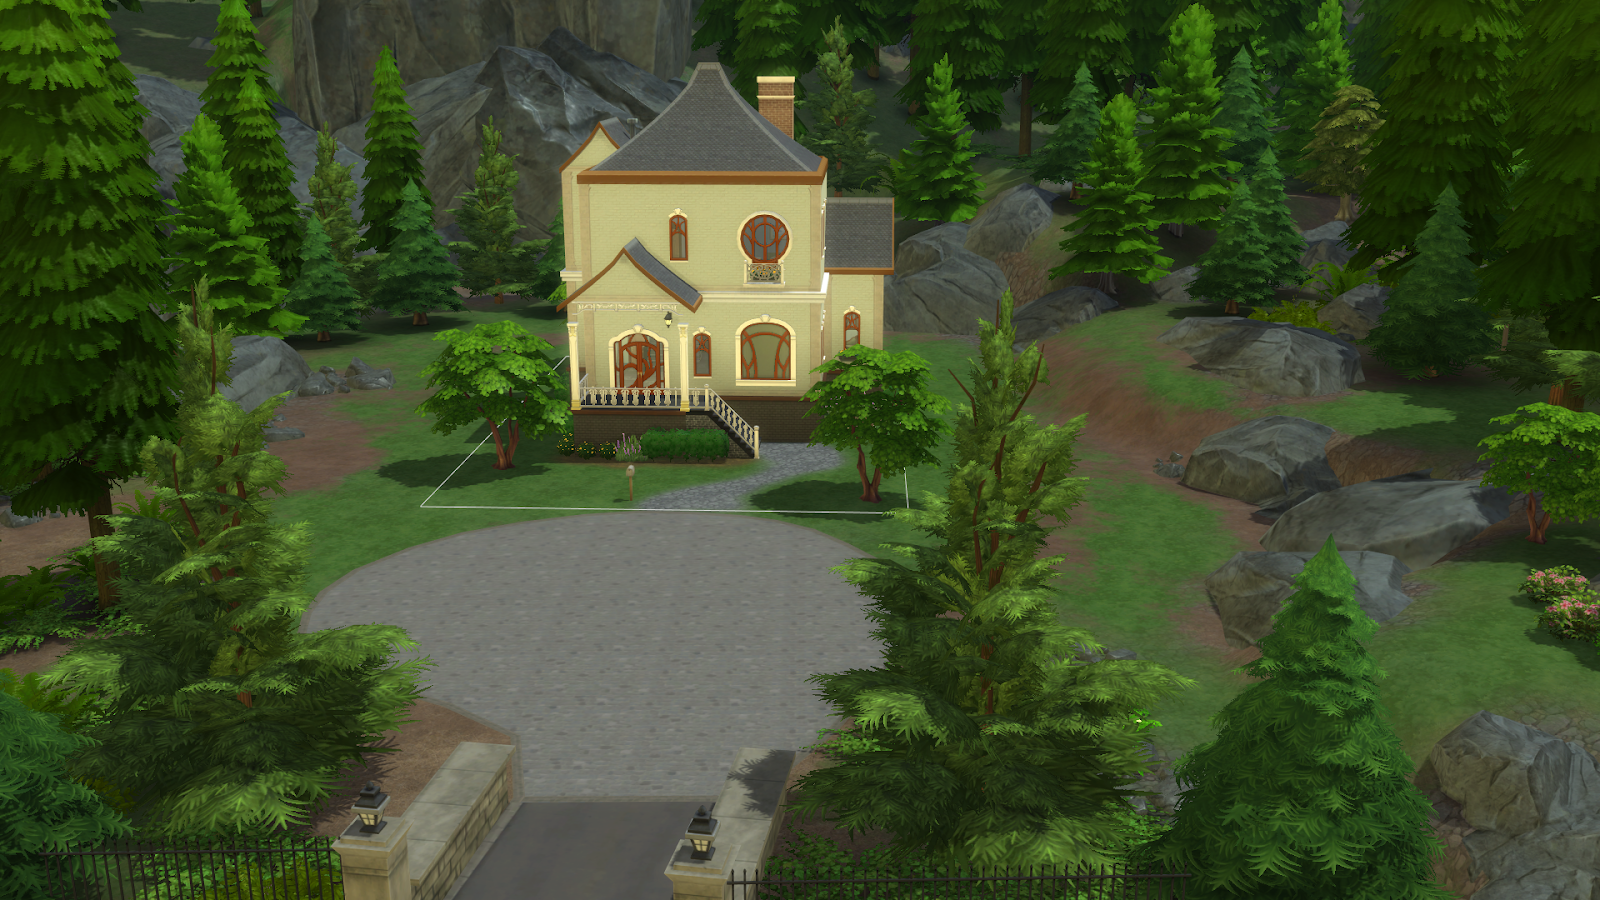 The Missing Door On This Sims 4 House Is Bugging Me